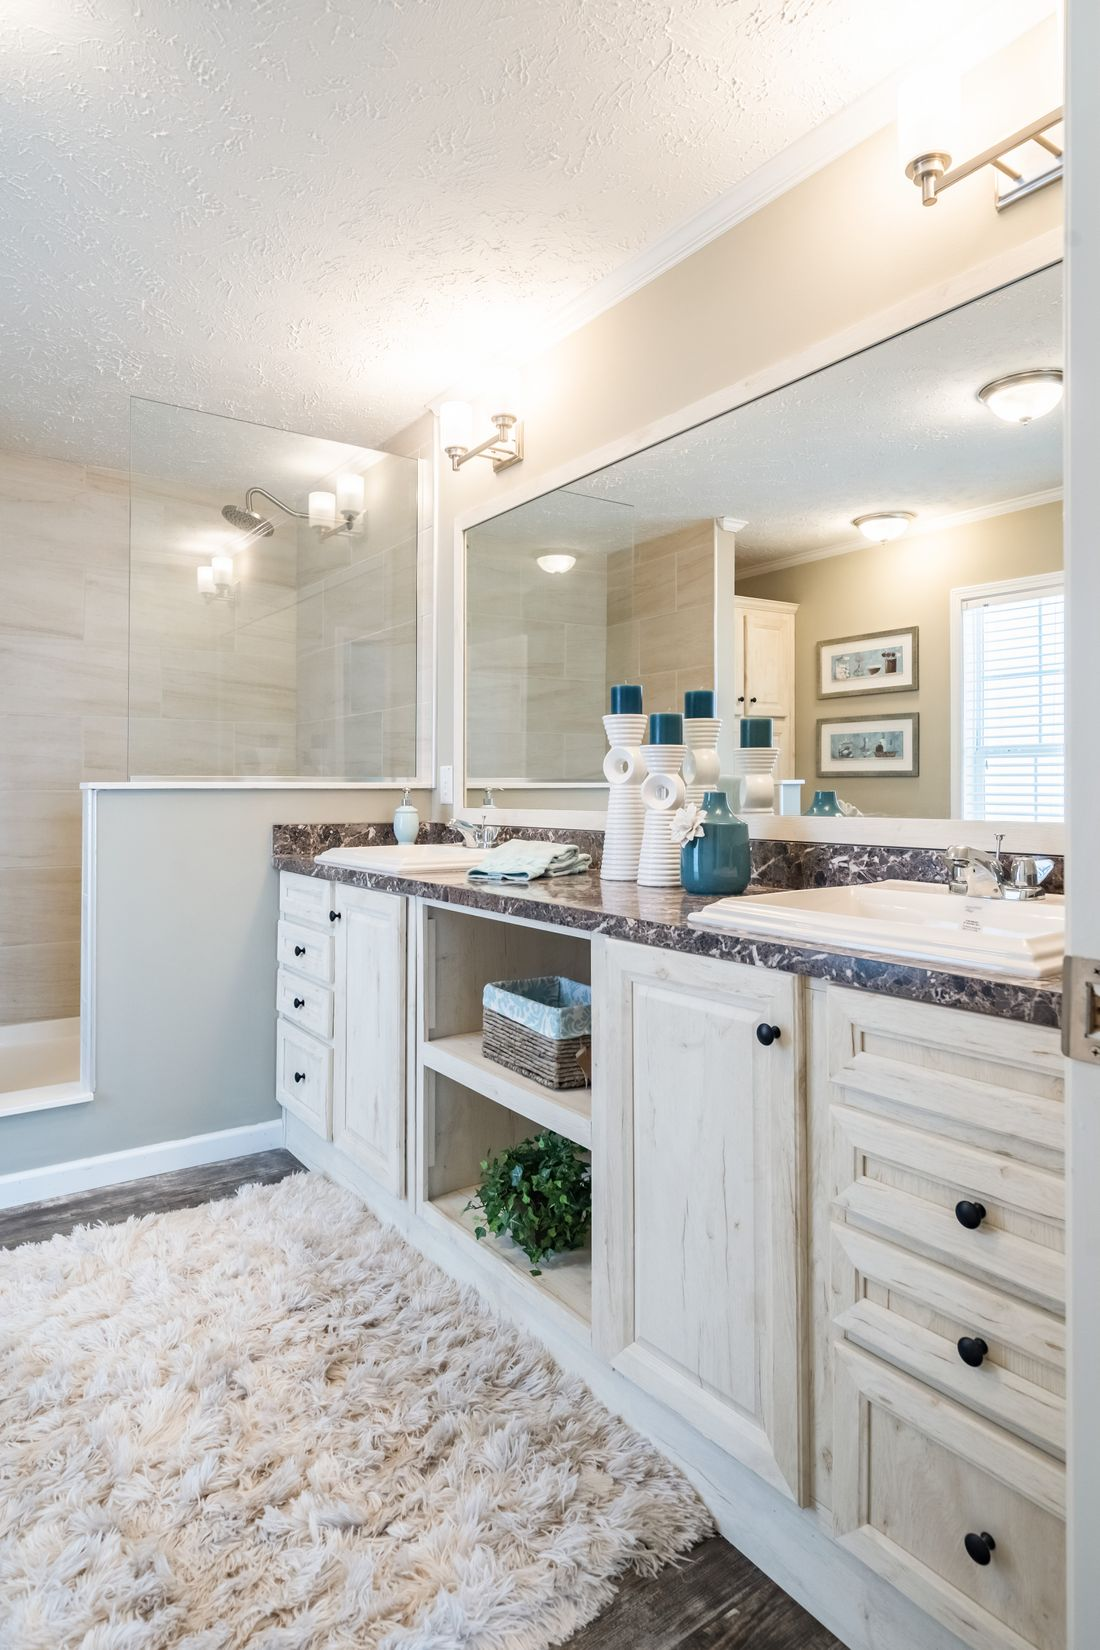 The 4608 ROCKETEER 5628 Master Bathroom. This Manufactured Mobile Home features 3 bedrooms and 2 baths.